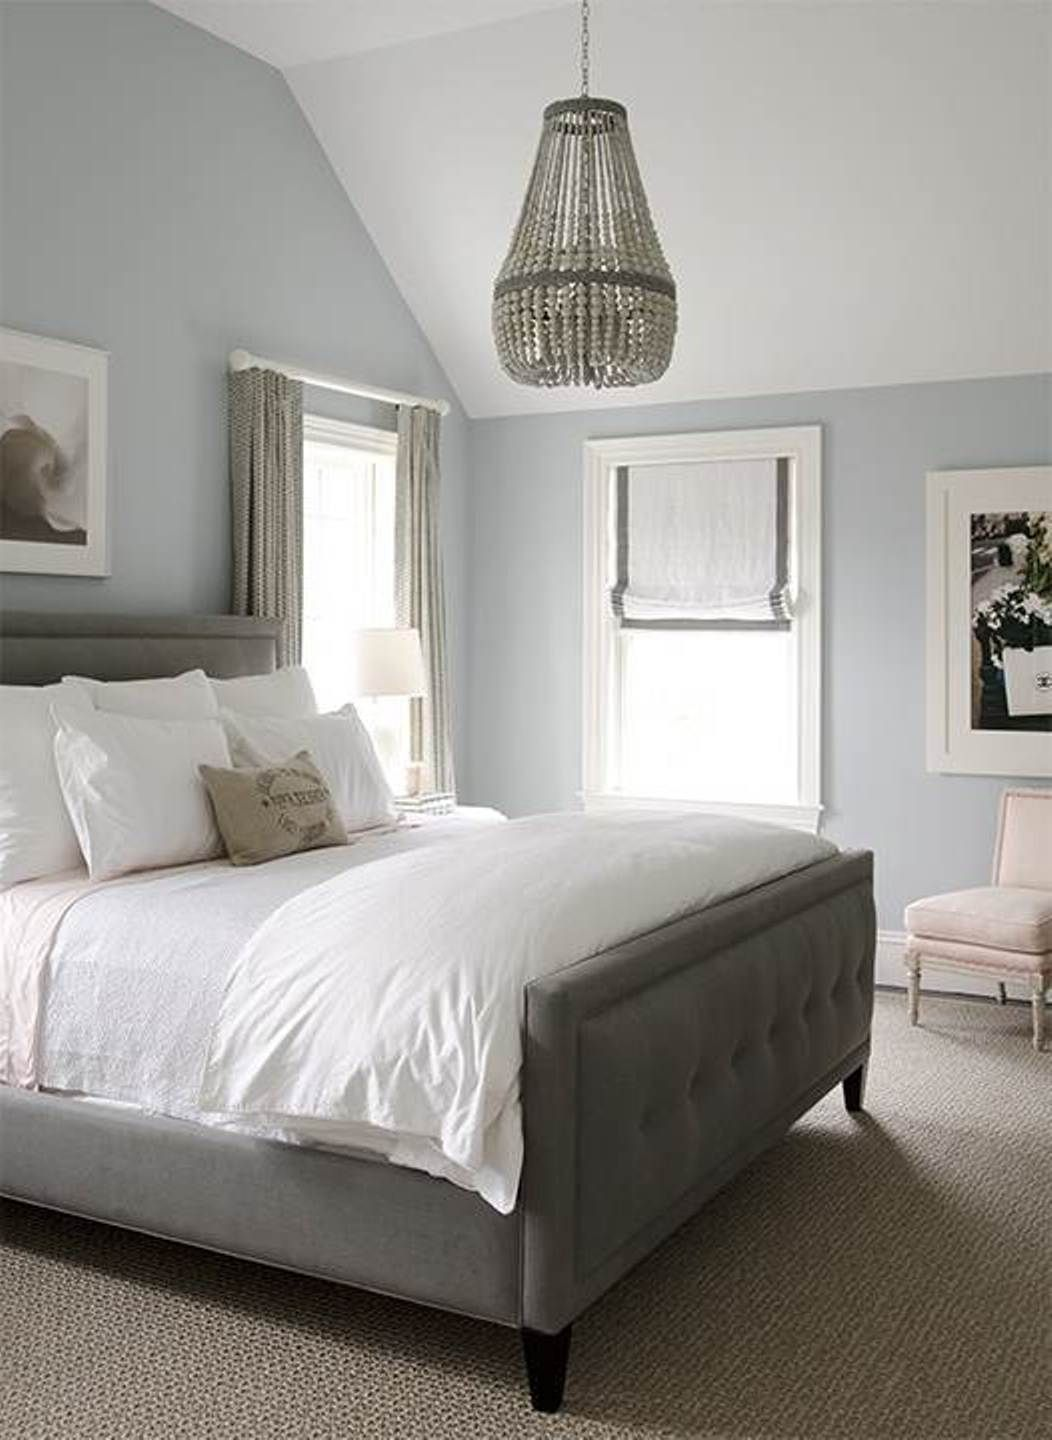 cute master bedroom ideas on a budget | Home decor bedroom ...